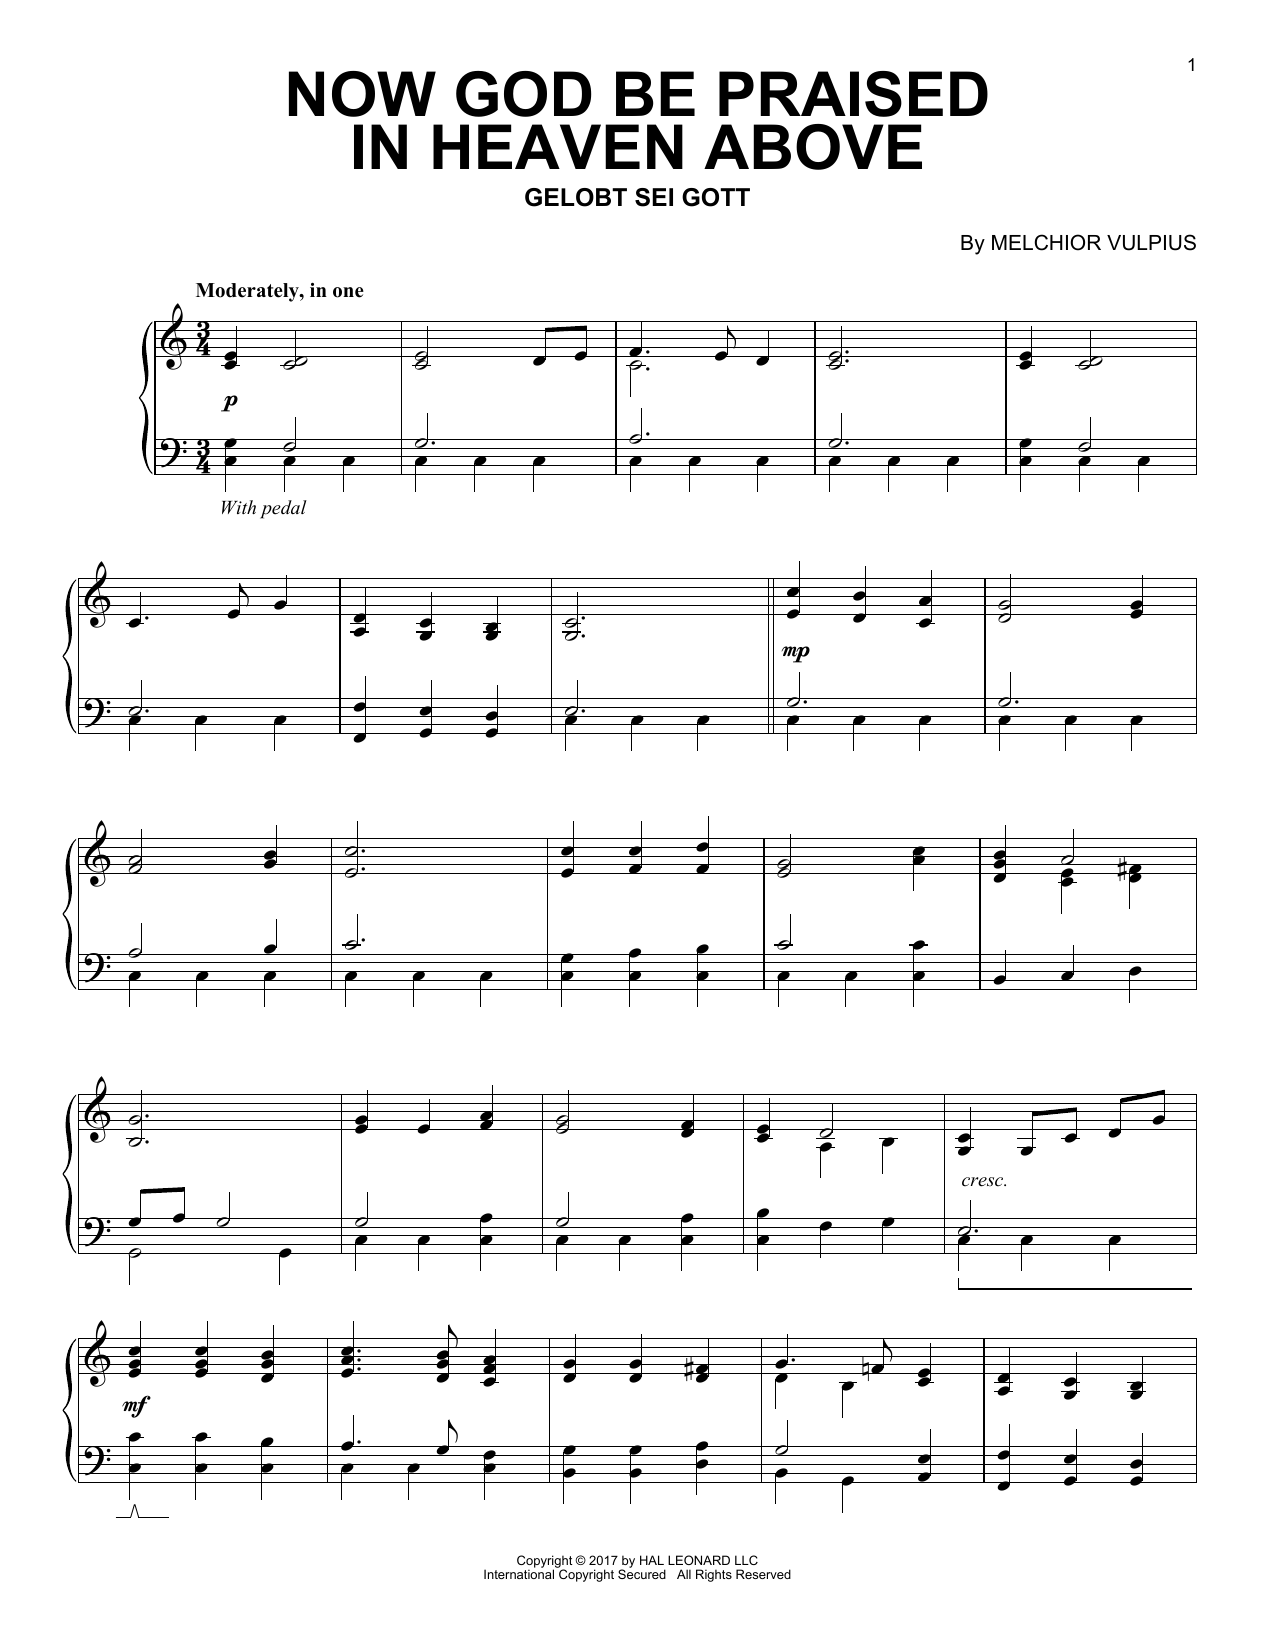 Melchior Vulpius Now God Be Praised In Heaven Above sheet music notes and chords. Download Printable PDF.